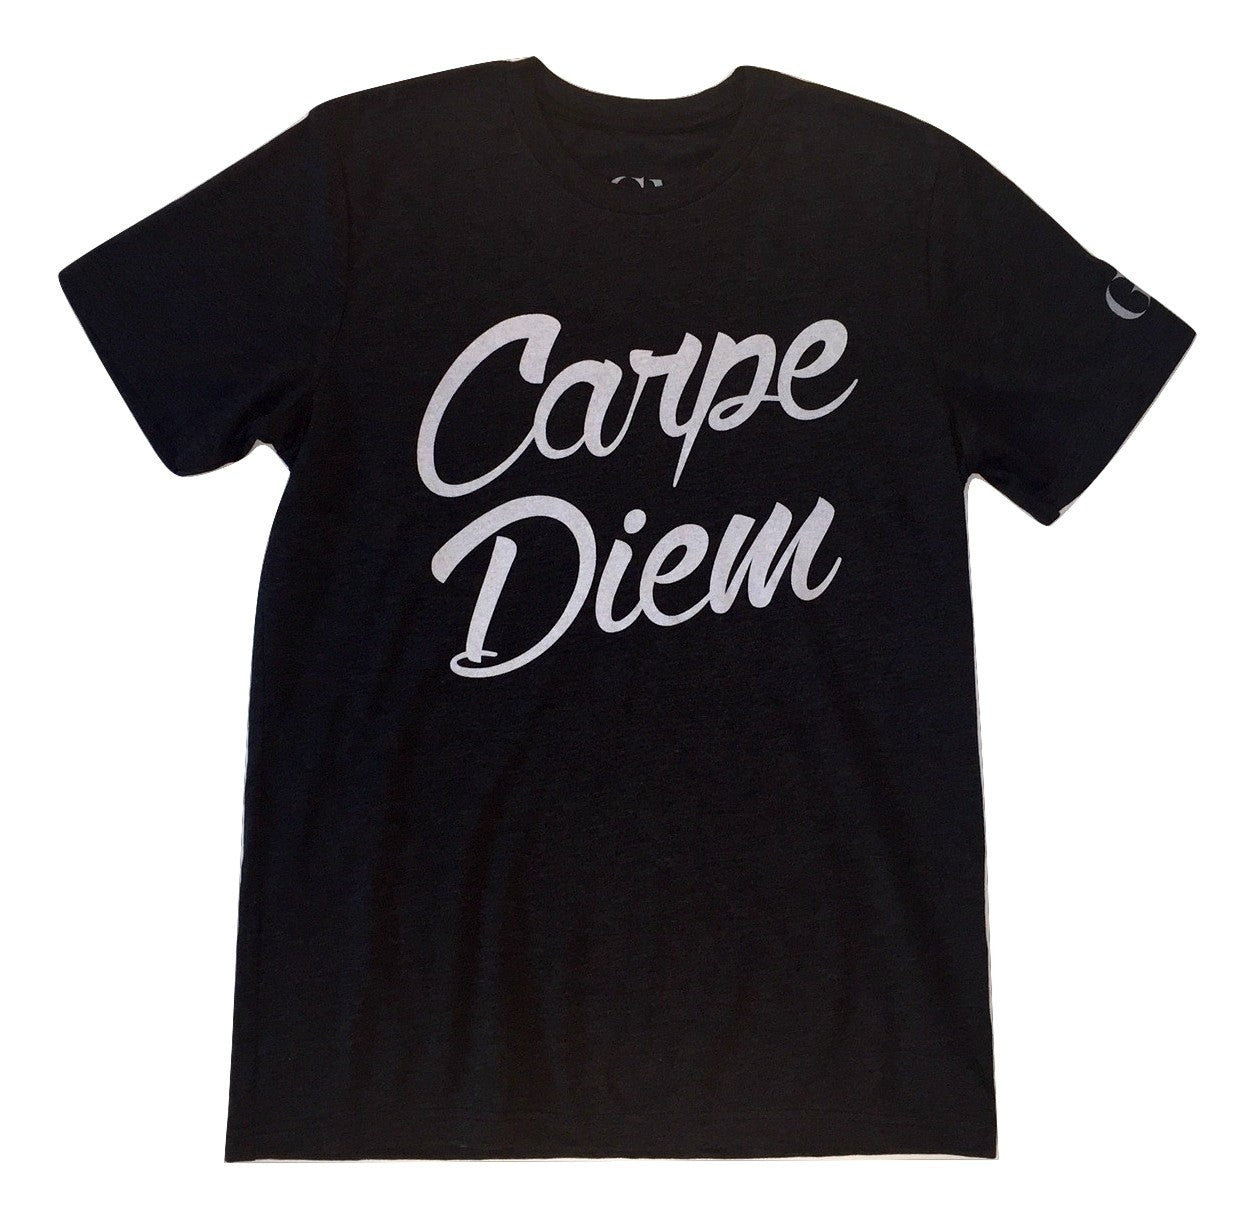 Men's Greatness 'Carpe Diem' Tee